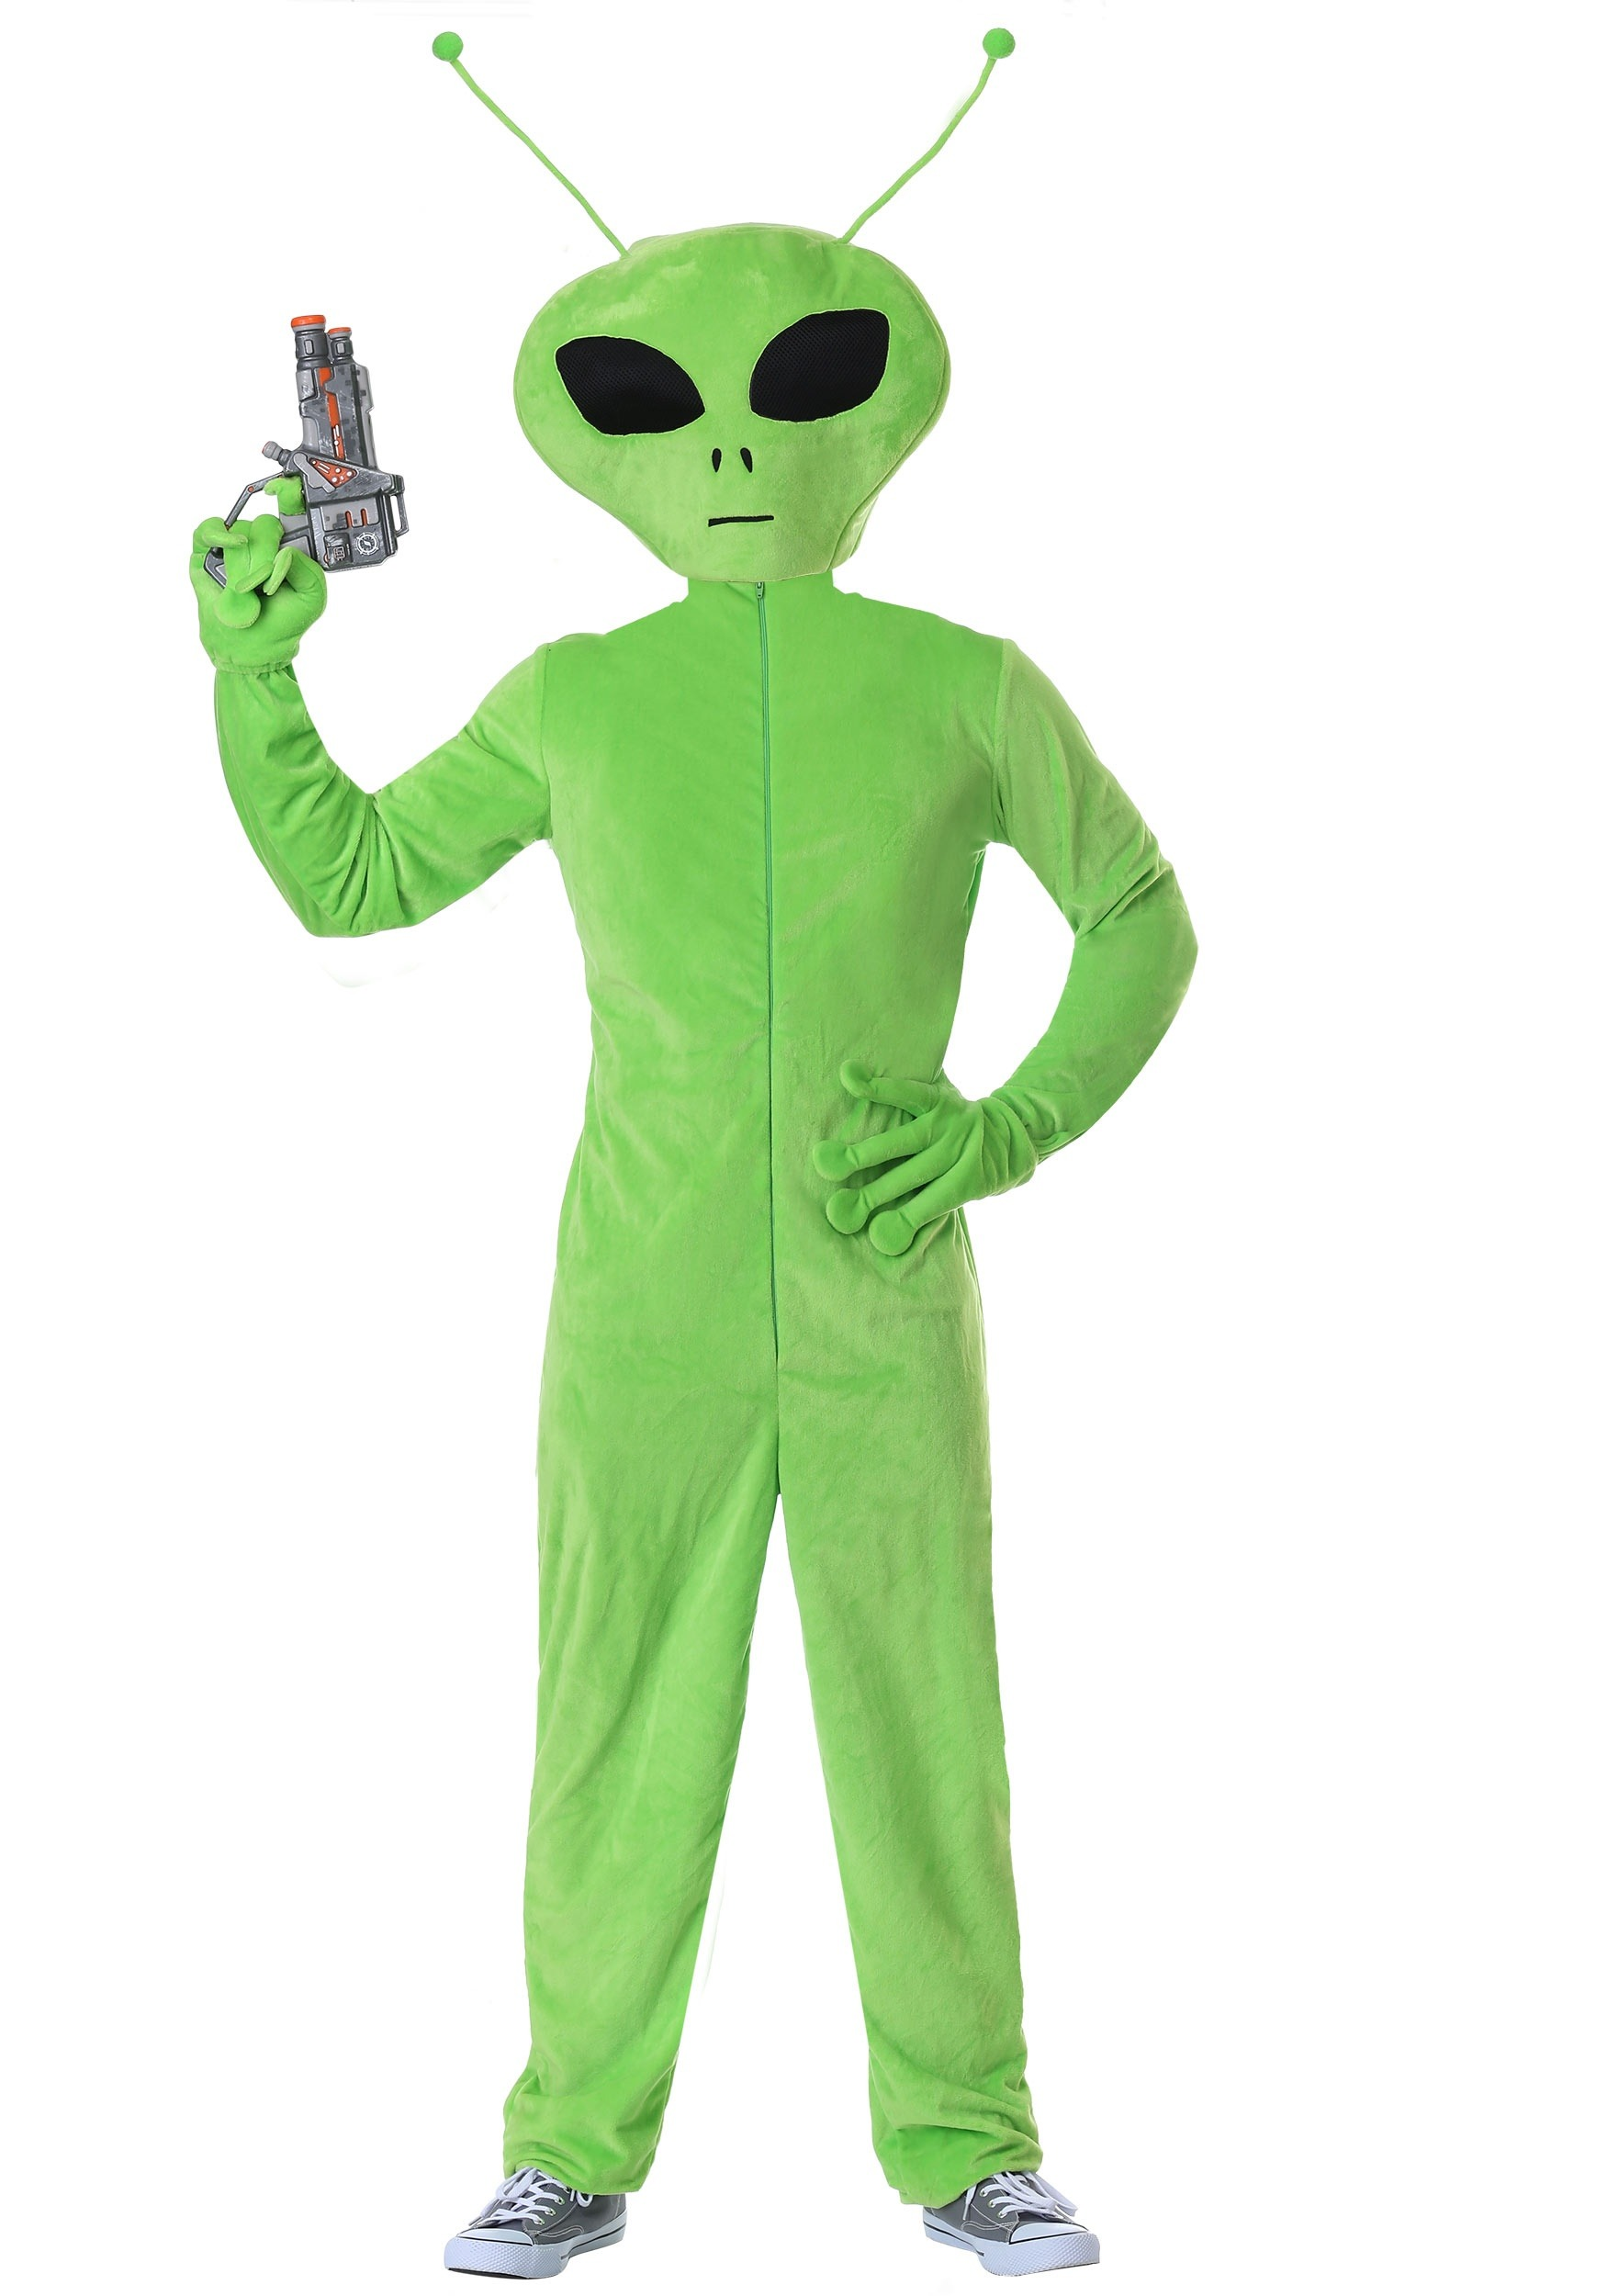 Oversized Alien Costume for Adults